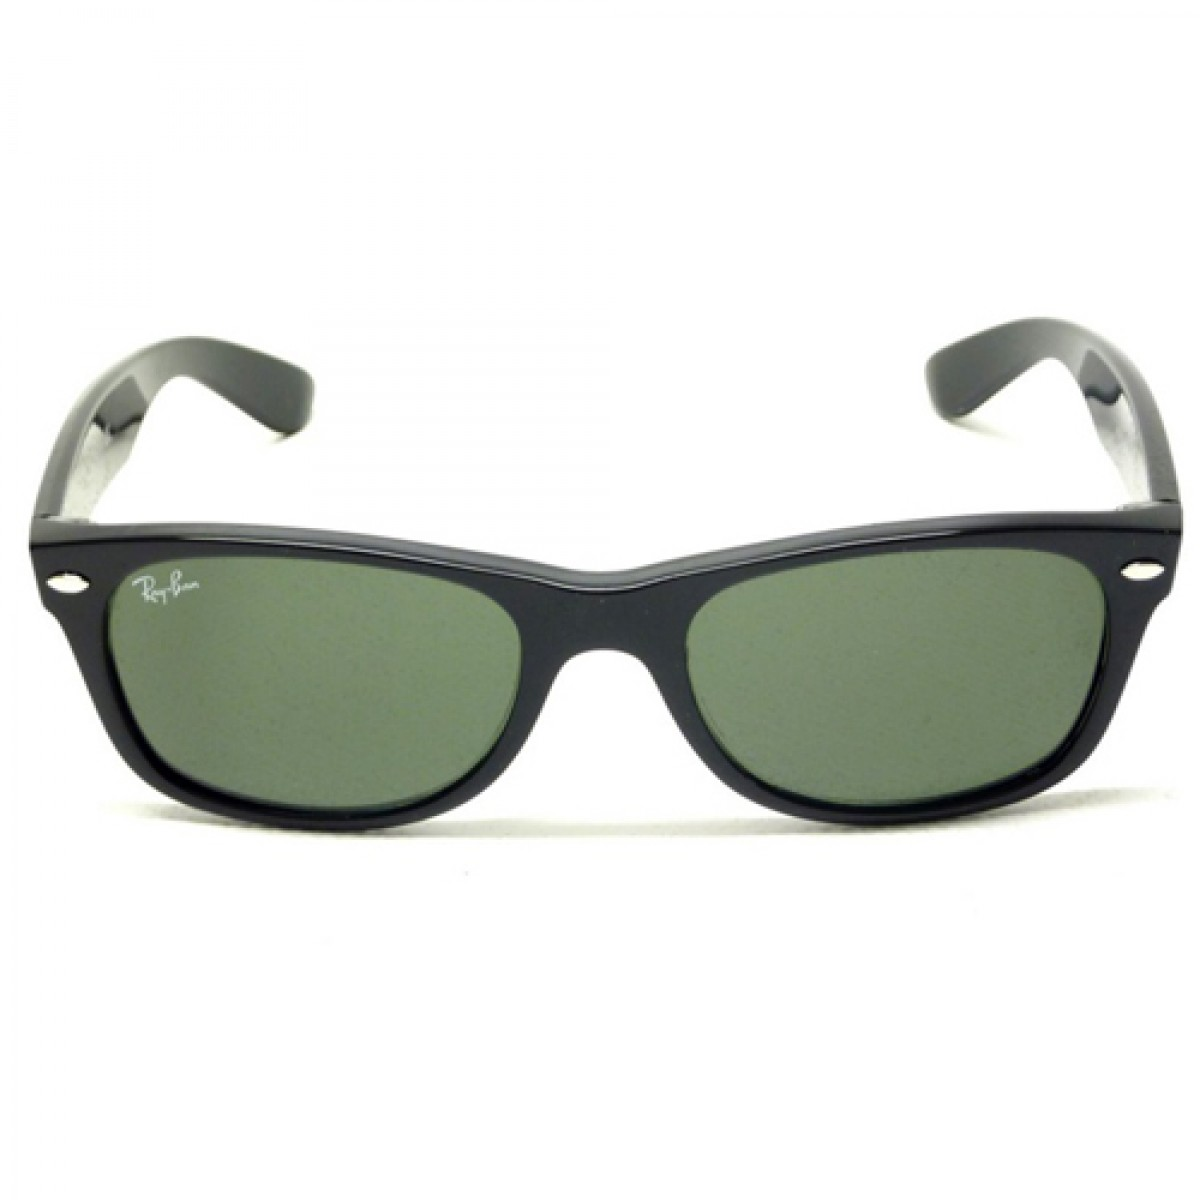 277e6e1c4f106 Ray Ban New Wayfarer Unisex Sunglasses RB2132-901L-55. Be the first to  review this product